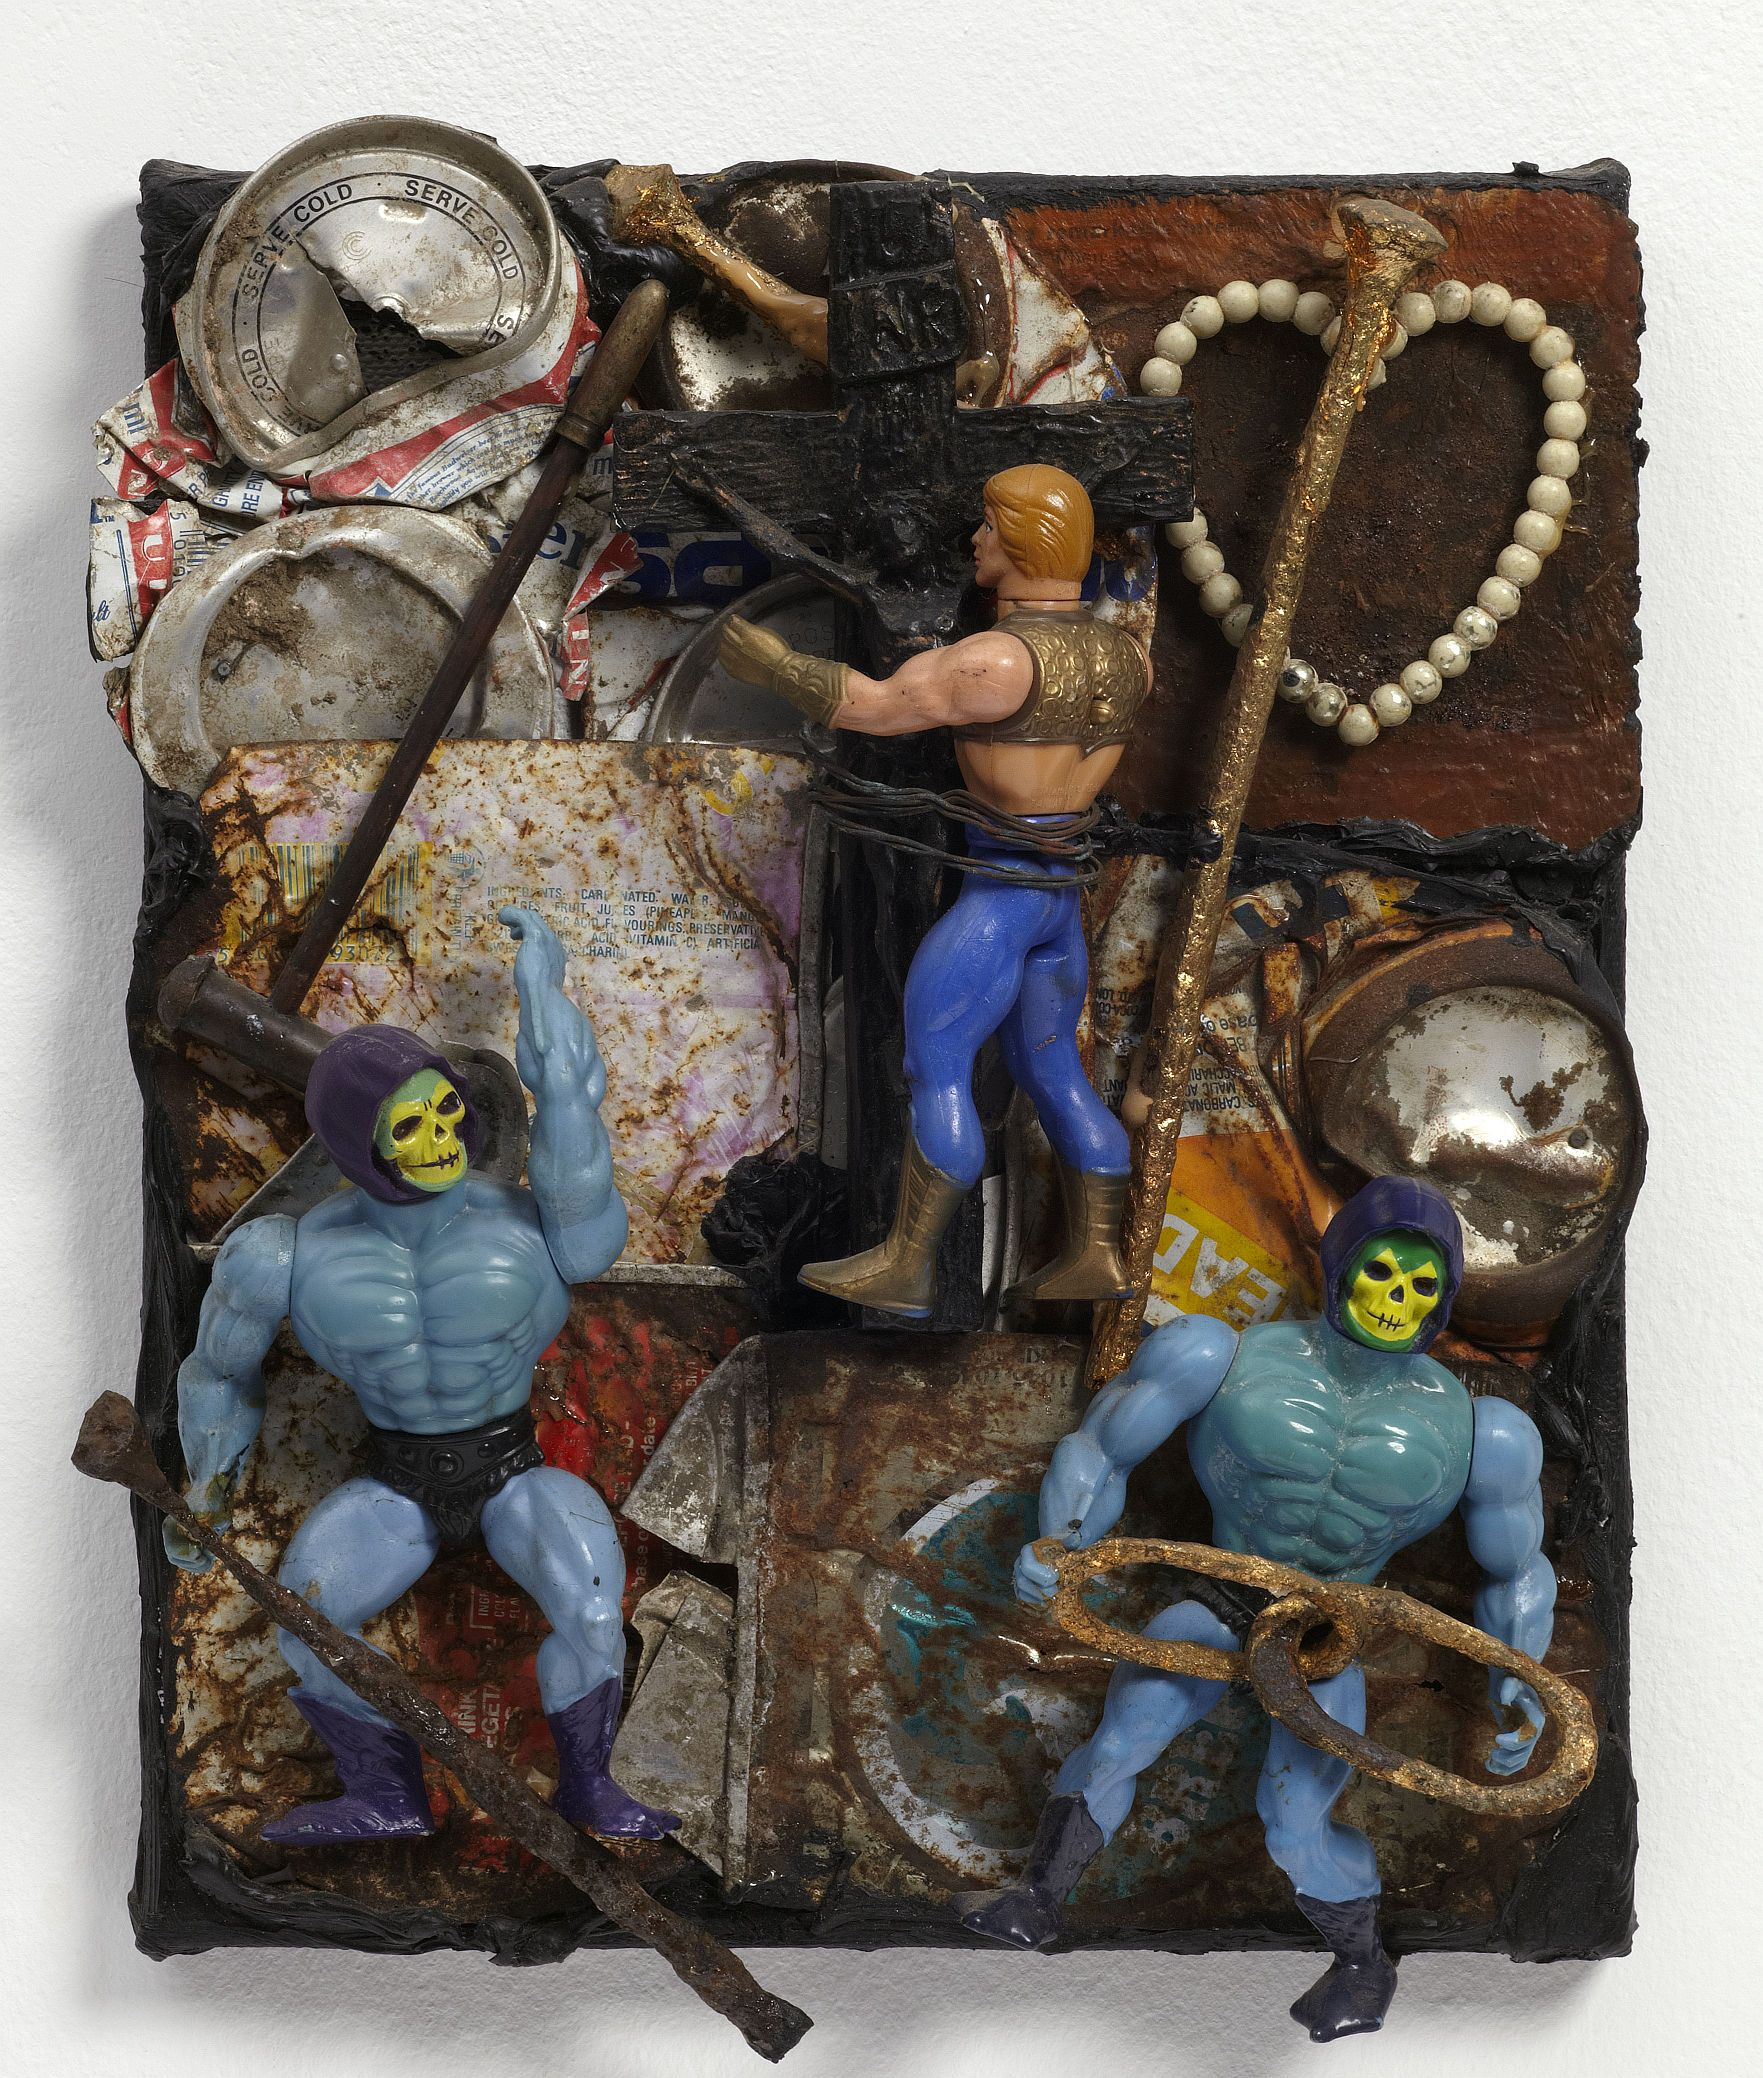 Derek Jarman, I.N.R.I., 1988, oil and mixed media on canvas, 33.5 x 27 x 8.5 cm, Courtesy of Keith Collins Will Trust and Amanda Wilkinson Gallery, London